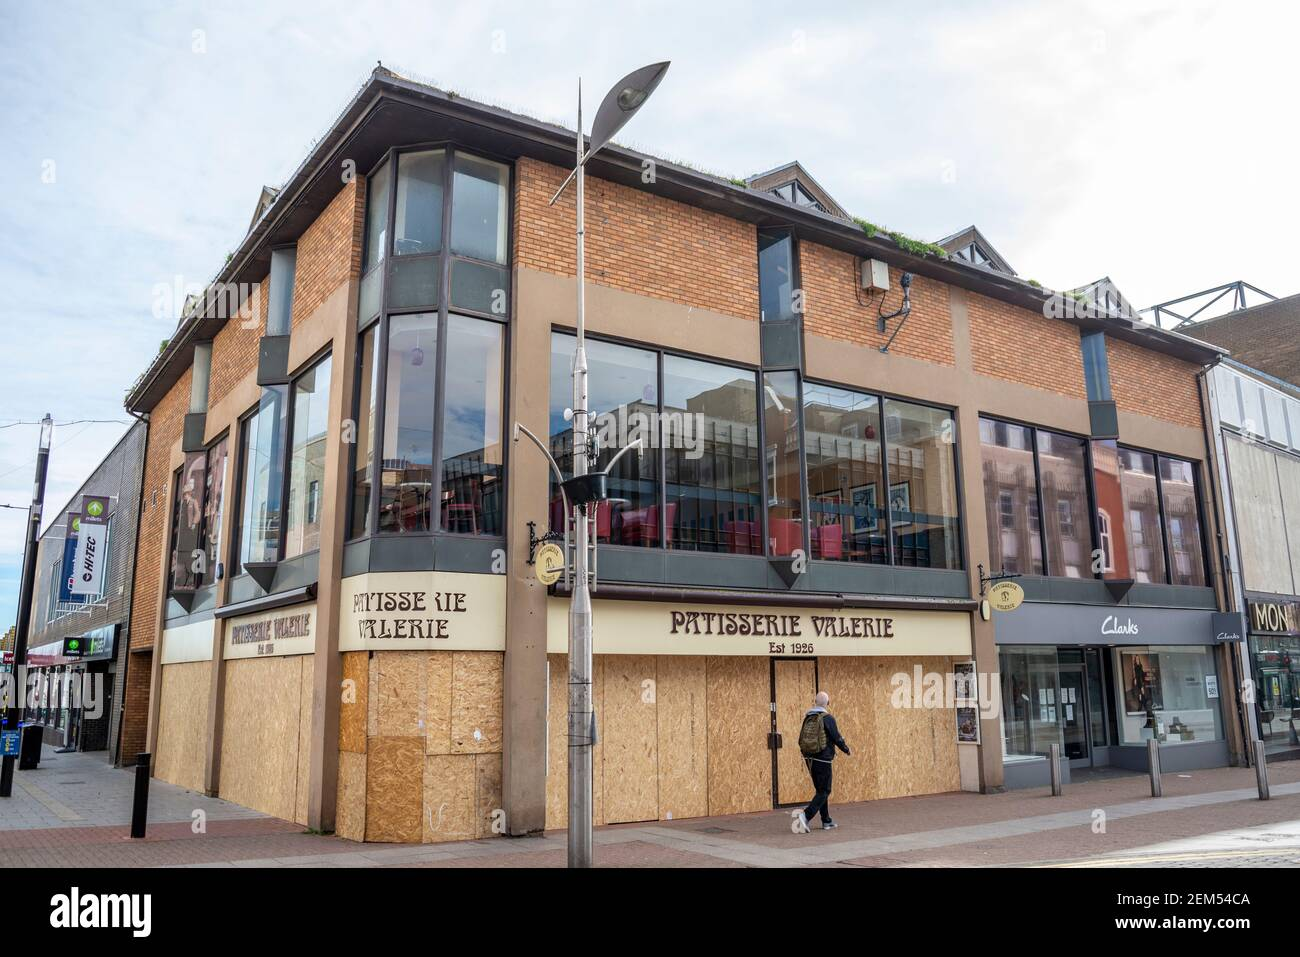 closed-and-boarded-up-patisserie-valerie-cafe-restaurant-in-high-street-southend-on-sea-essex-uk-went-into-administration-hospitality-industry-2EM54CA.jpg